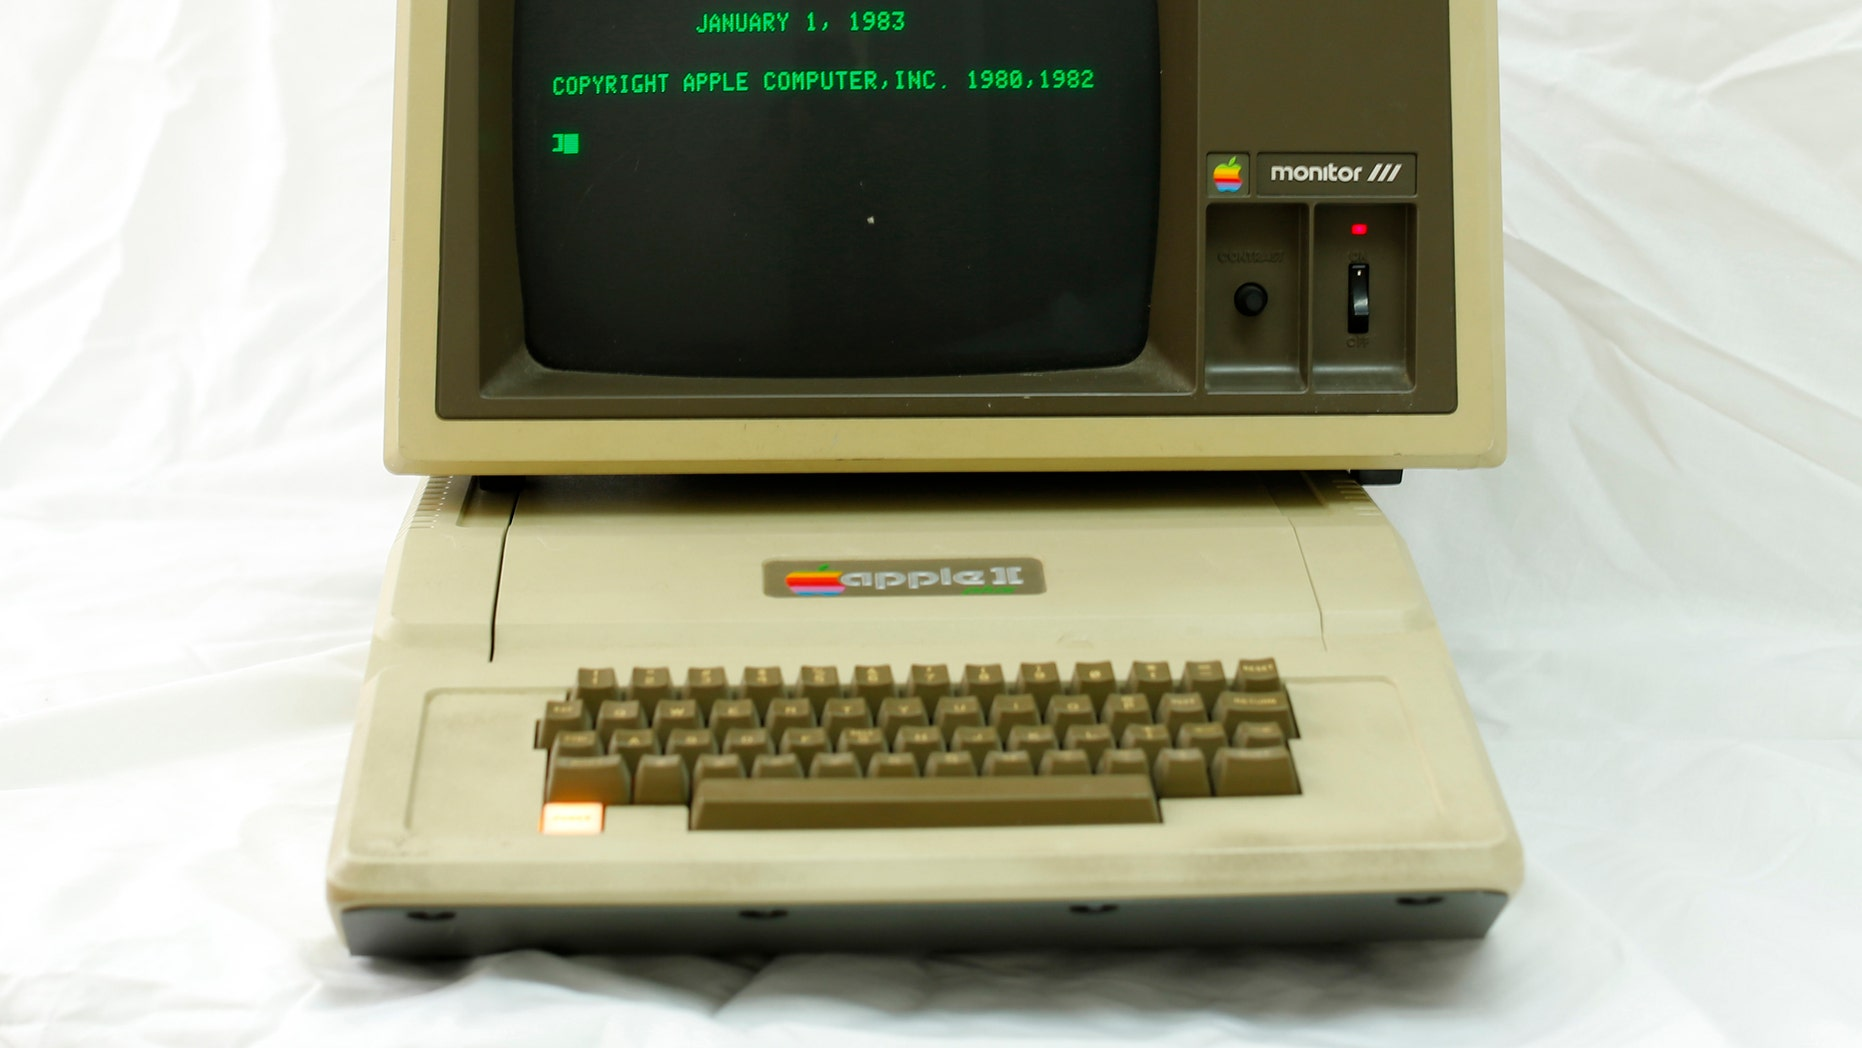 File photo - An Apple II computer is seen at B&R Computer Service shop in San Diego, California Jan. 22, 2014. (REUTERS/Mike Blake)